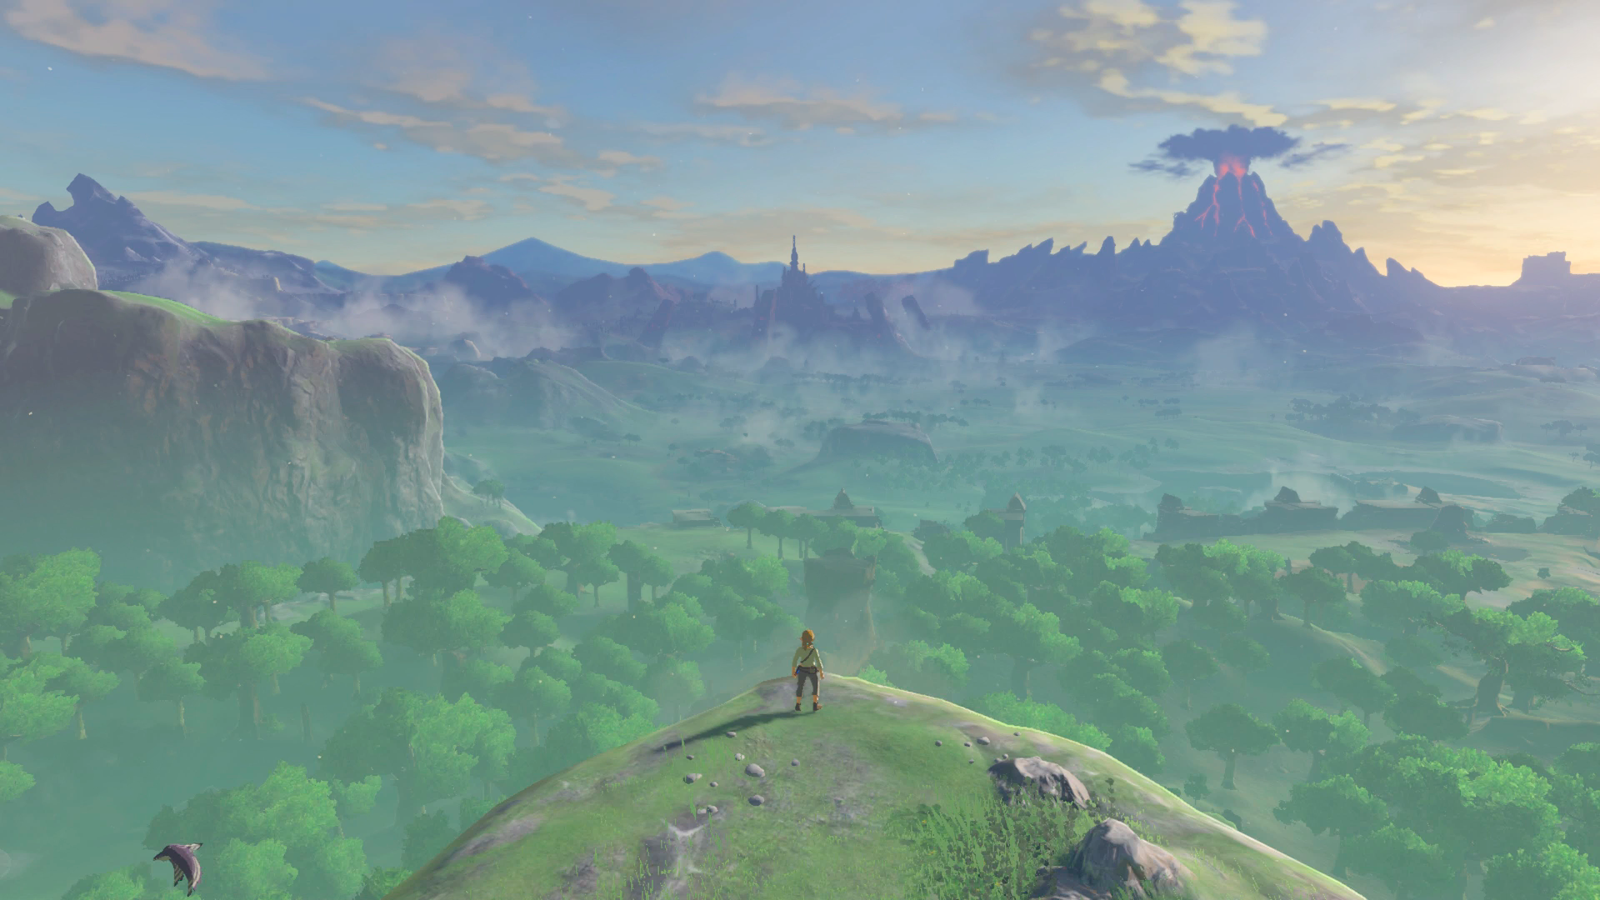 When Miyamoto First Played Zelda: Breath of the Wild, He Wouldn't Stop Climbing Trees